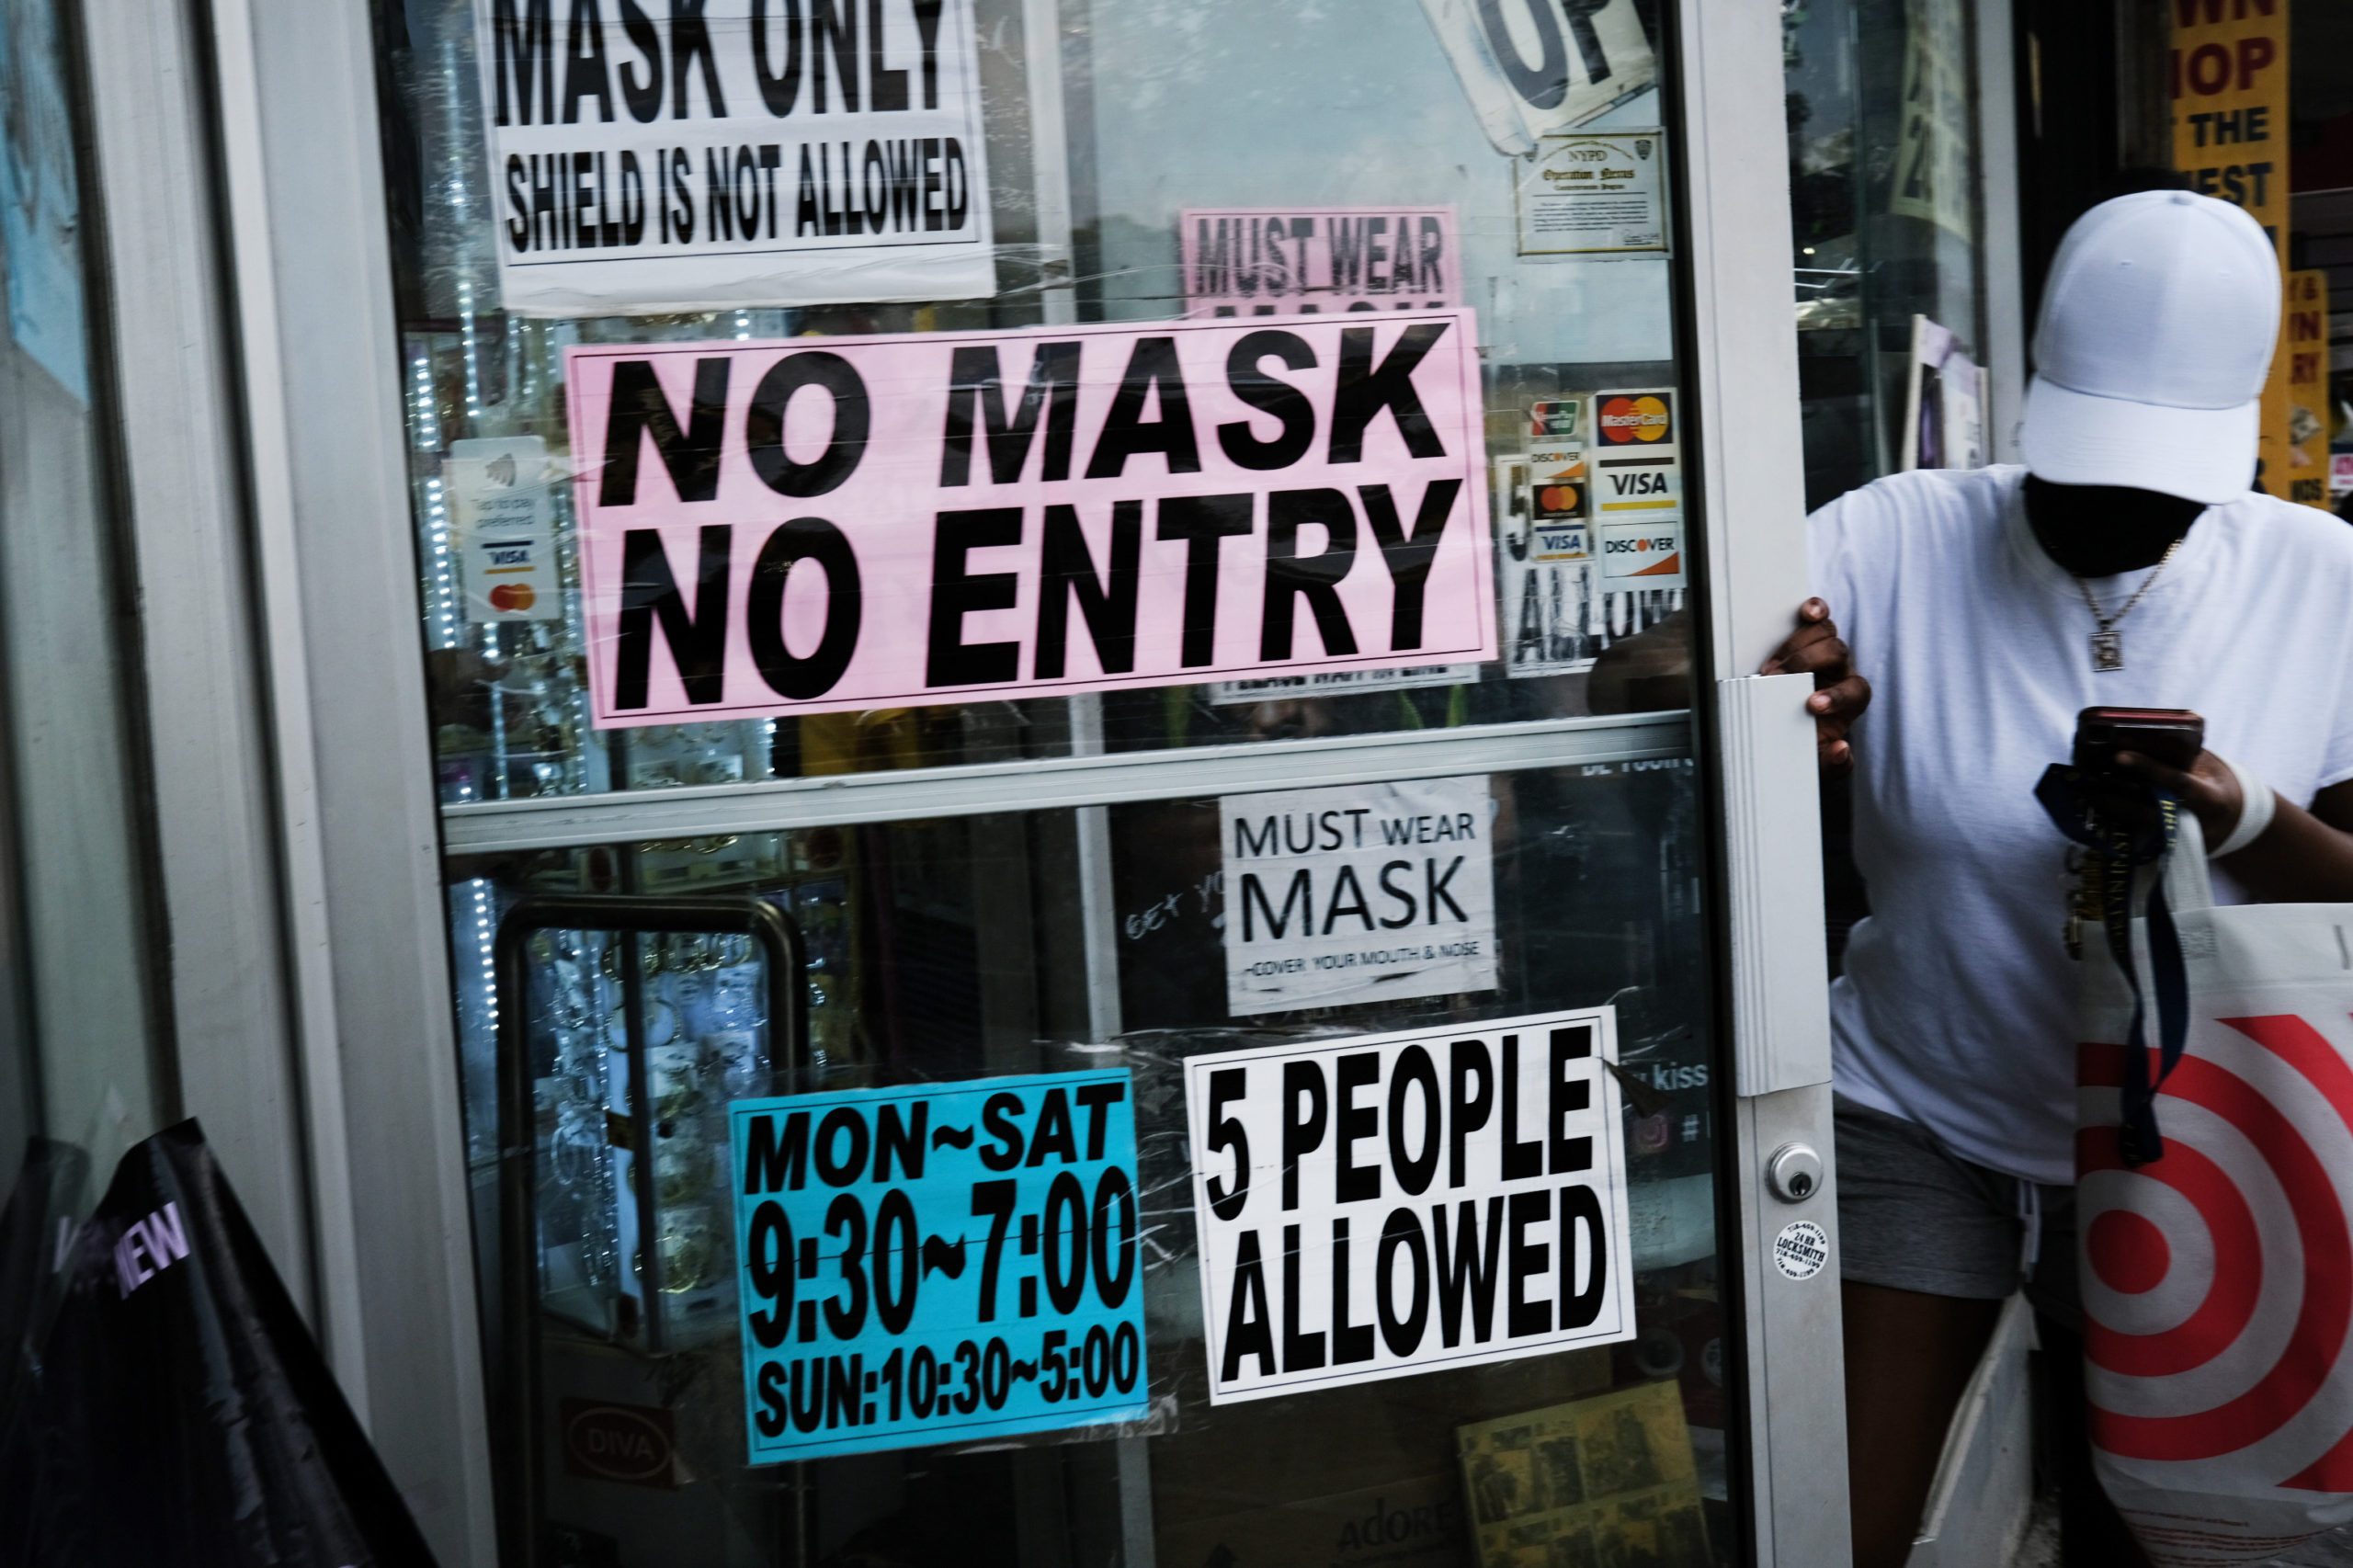 People walk out of a store requesting that people wear masks on July 26 in New York City. (Spencer Platt/Getty Images)